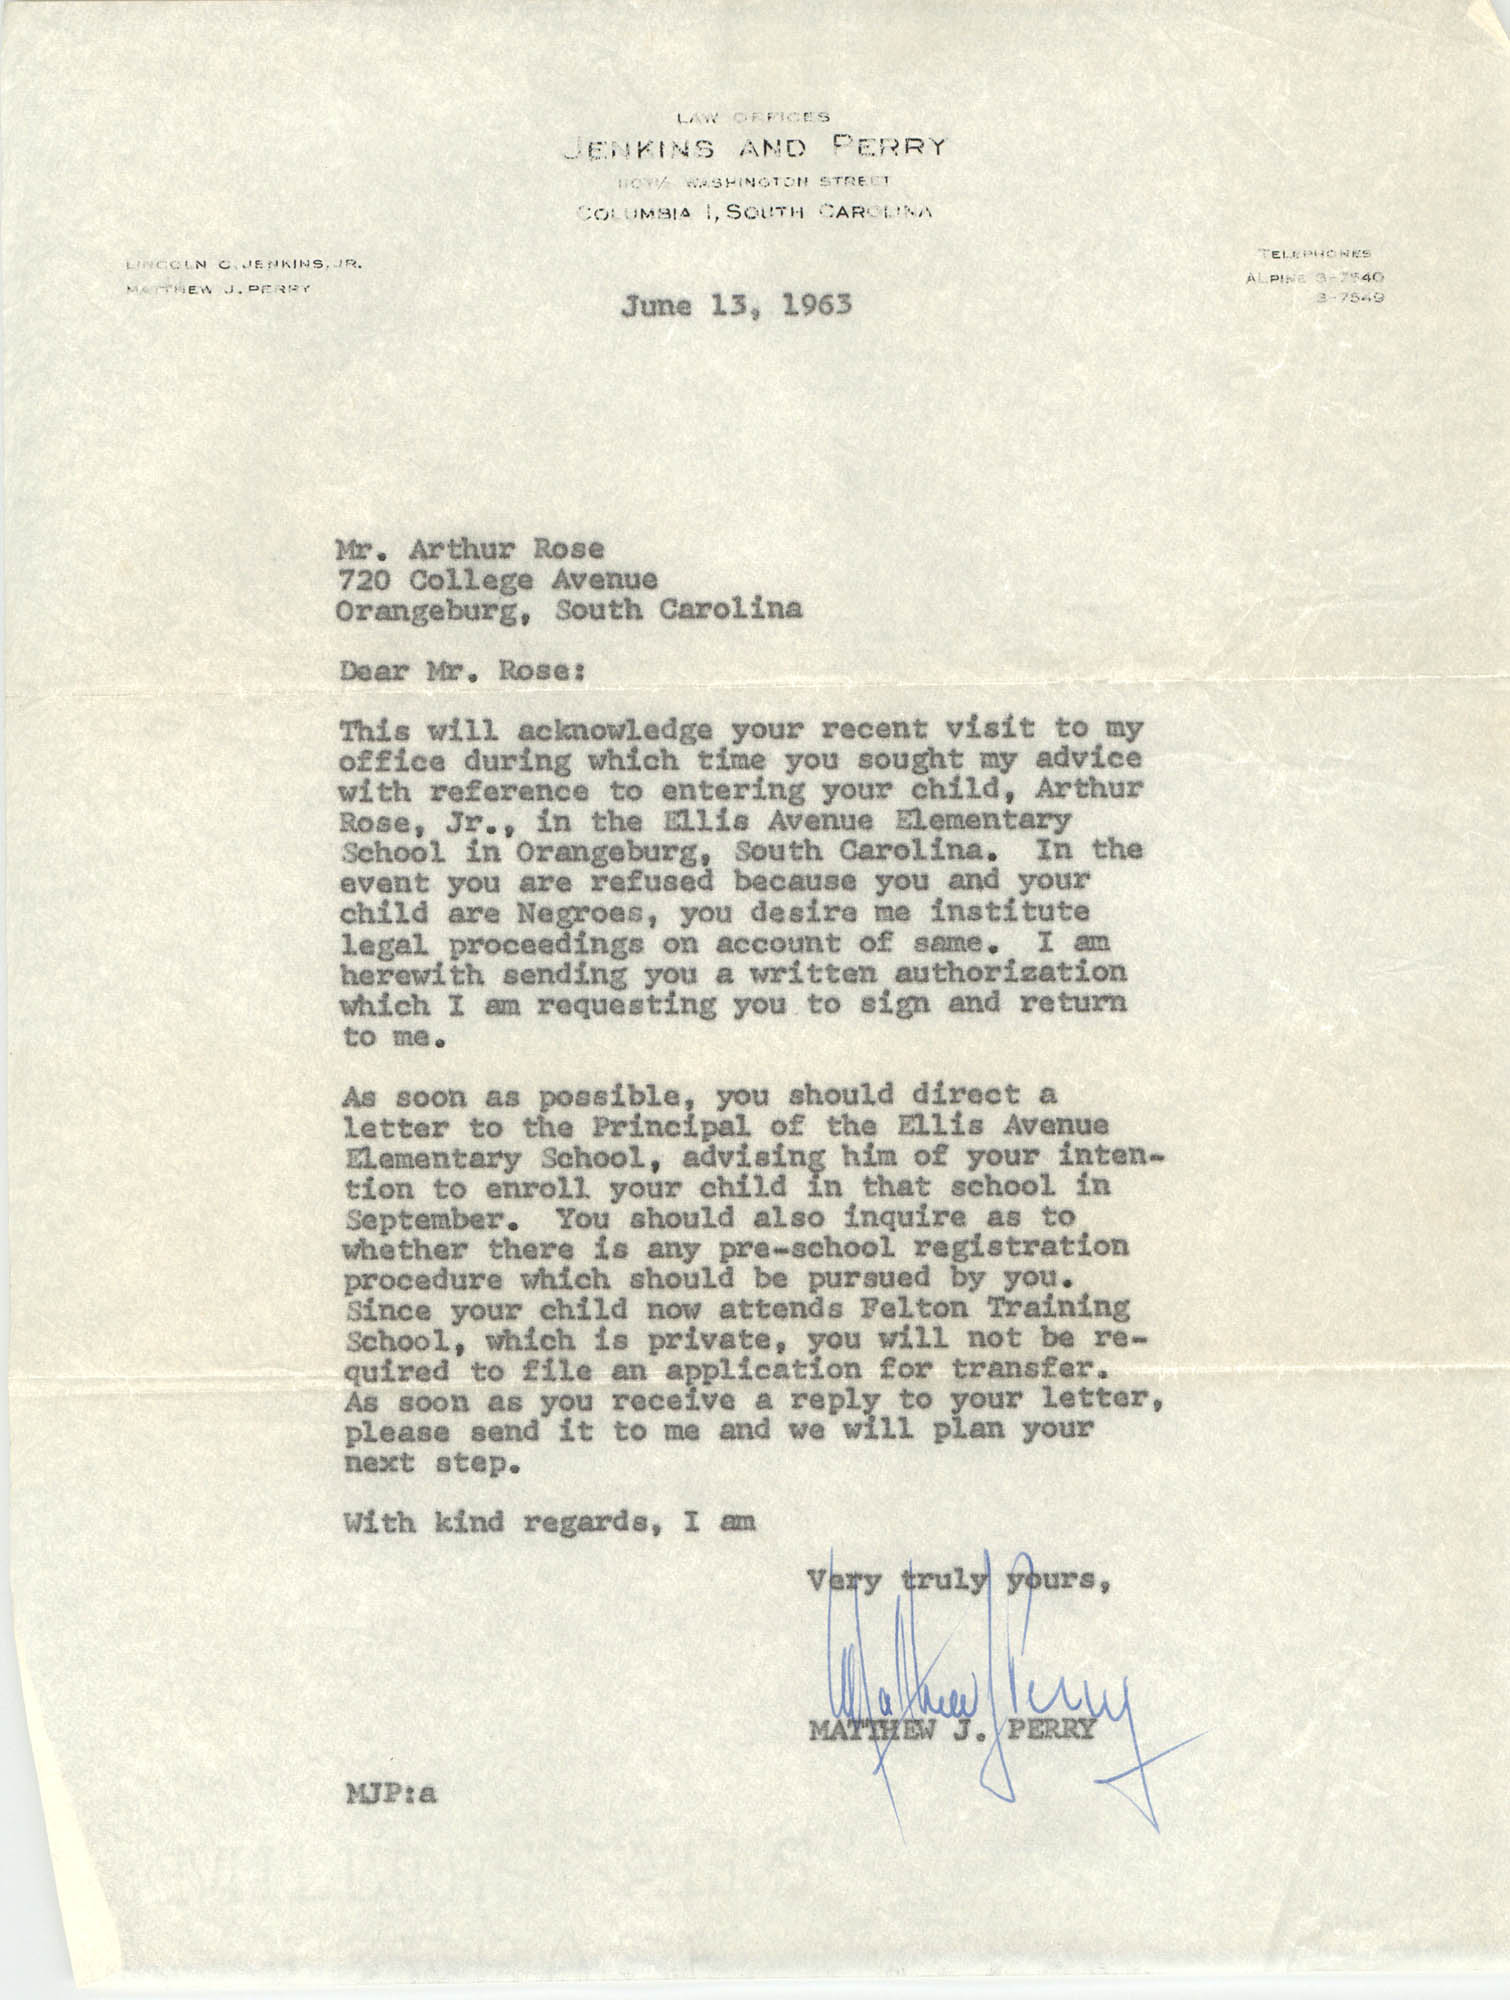 Letter from Matthew J. Perry to Arthur Rose, June 13, 1963